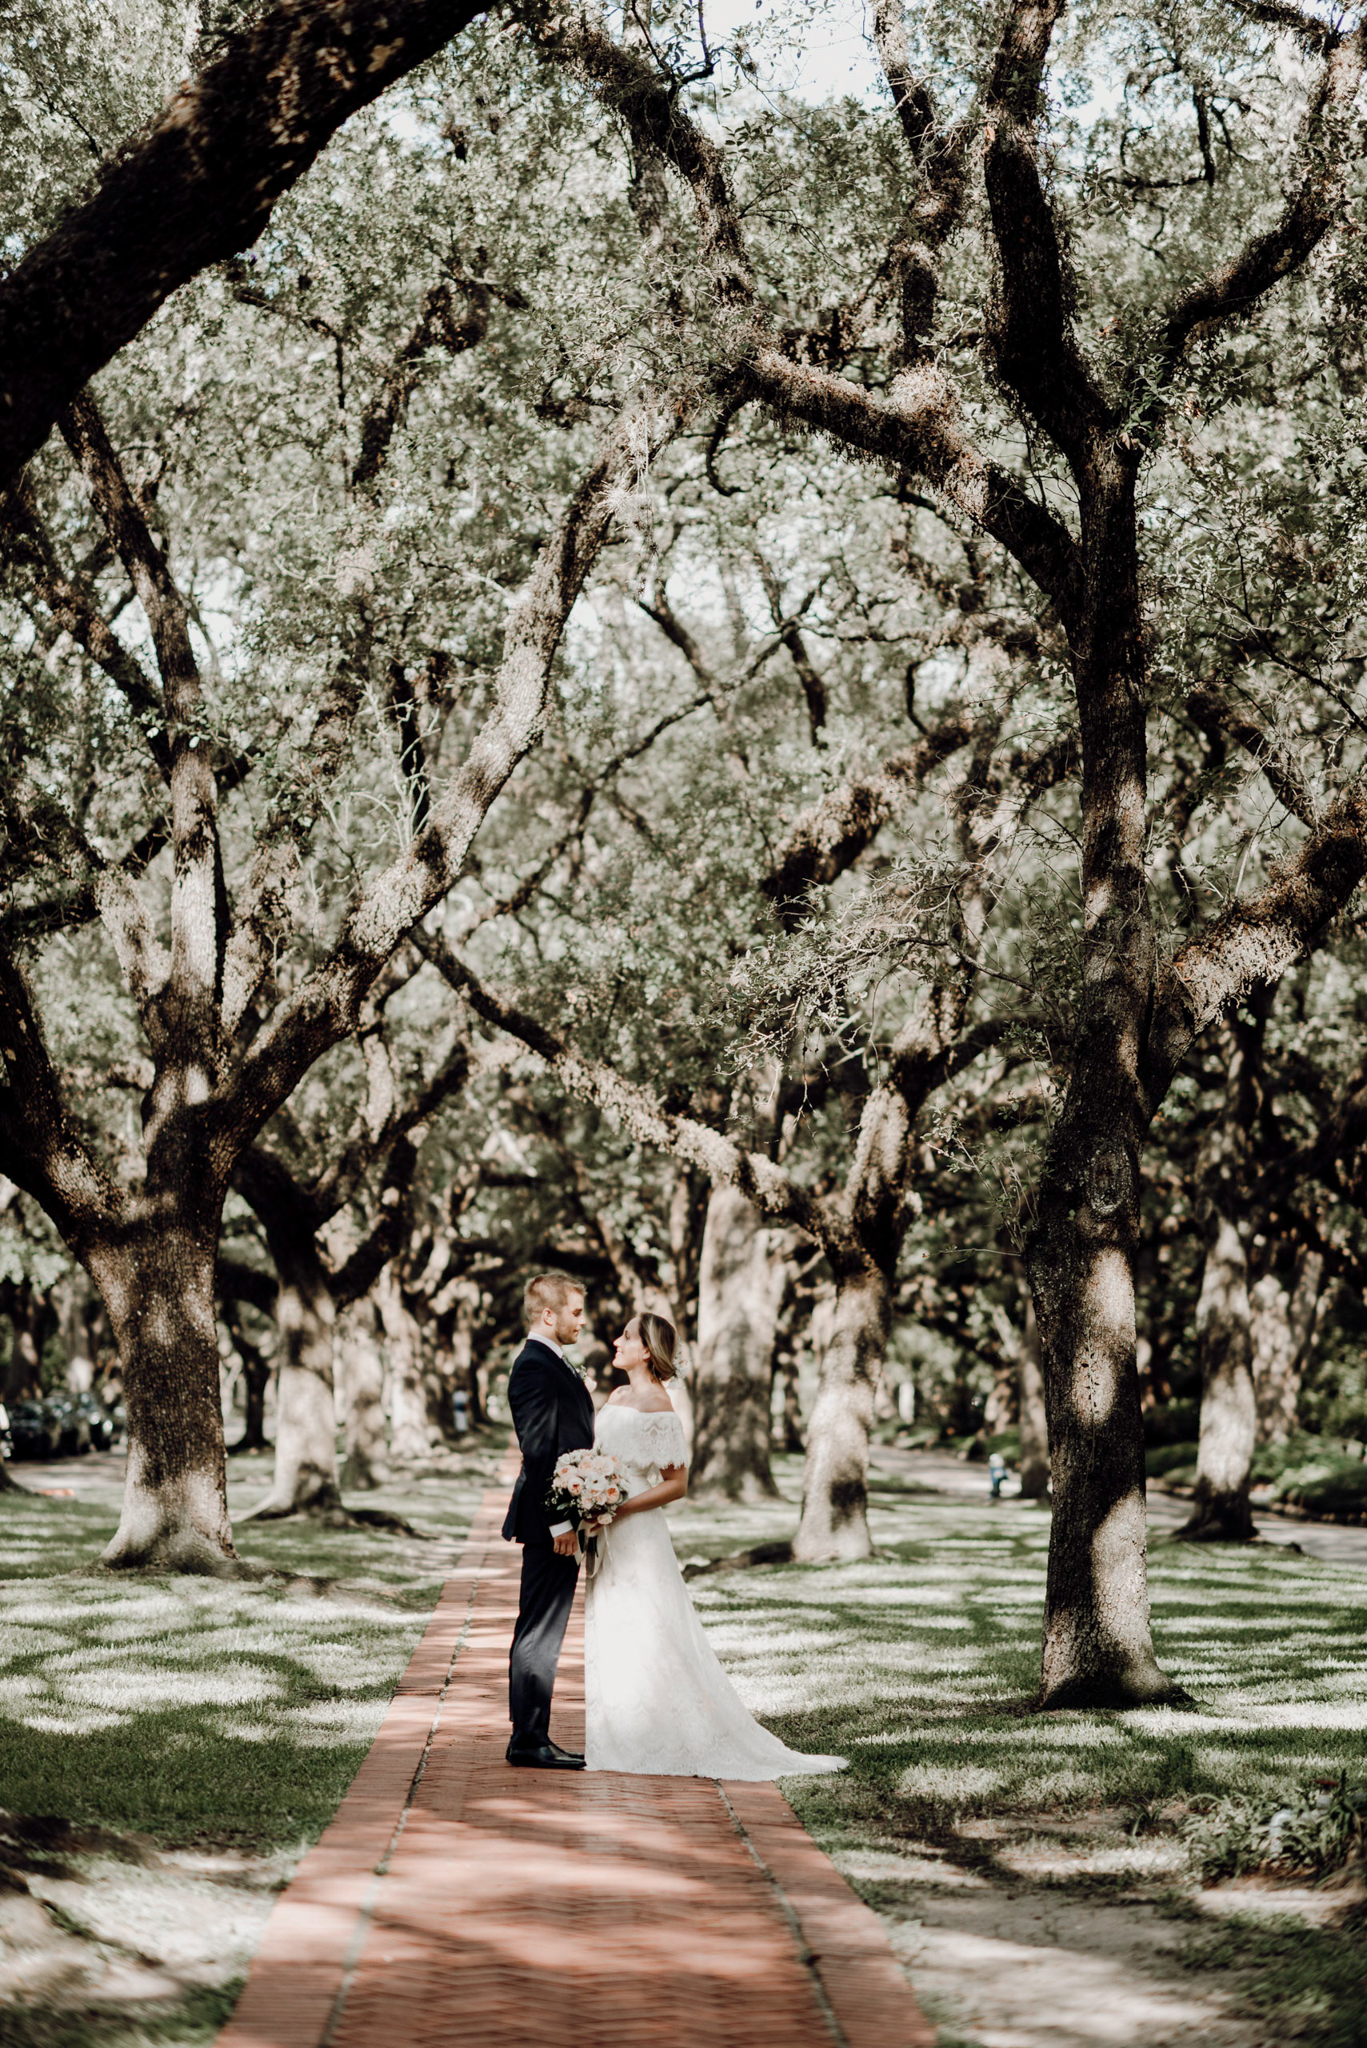 Houston Wedding Photographer-North Blvd Intimate Elopement- Houston Wedding Photographer -Kristen Giles Photography-59.jpg